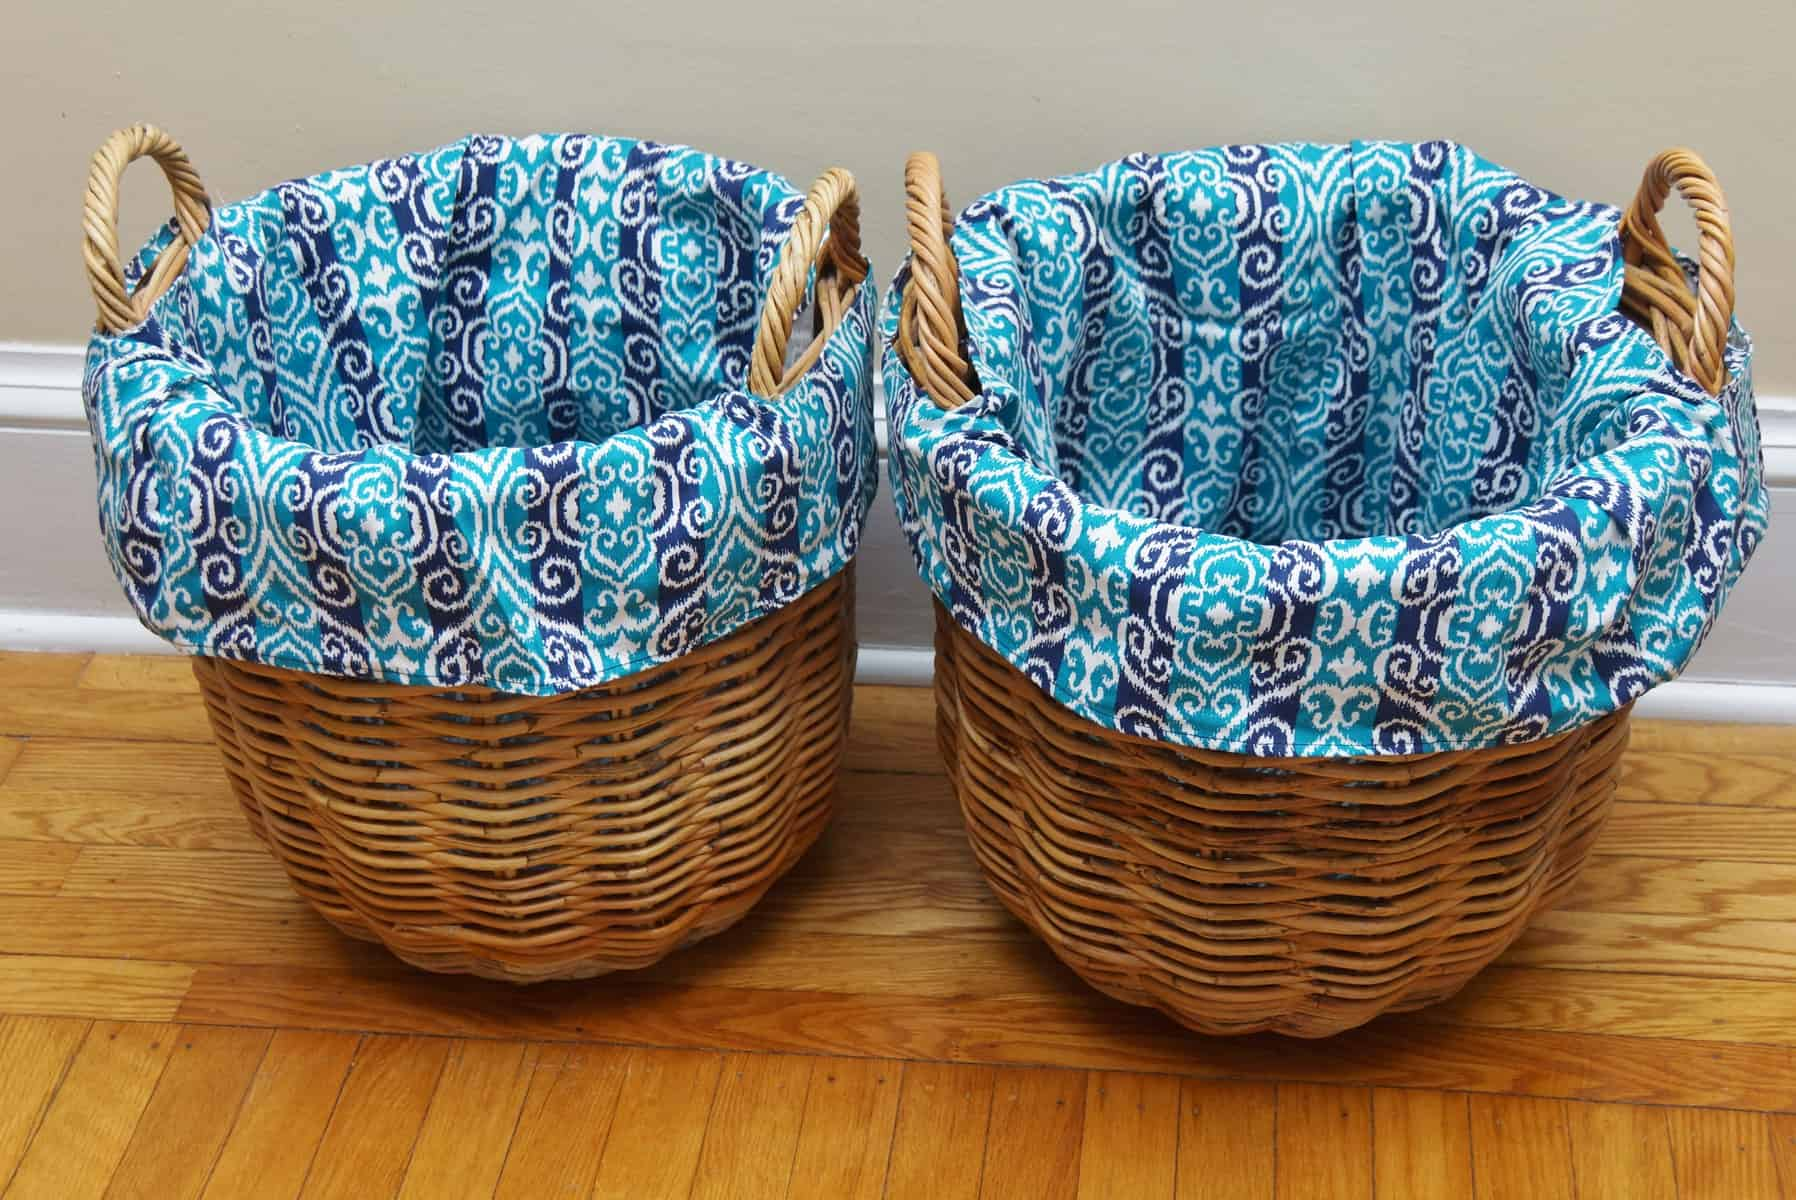 How to Make DIY Basket Liners for Round Baskets | HeartWork ...